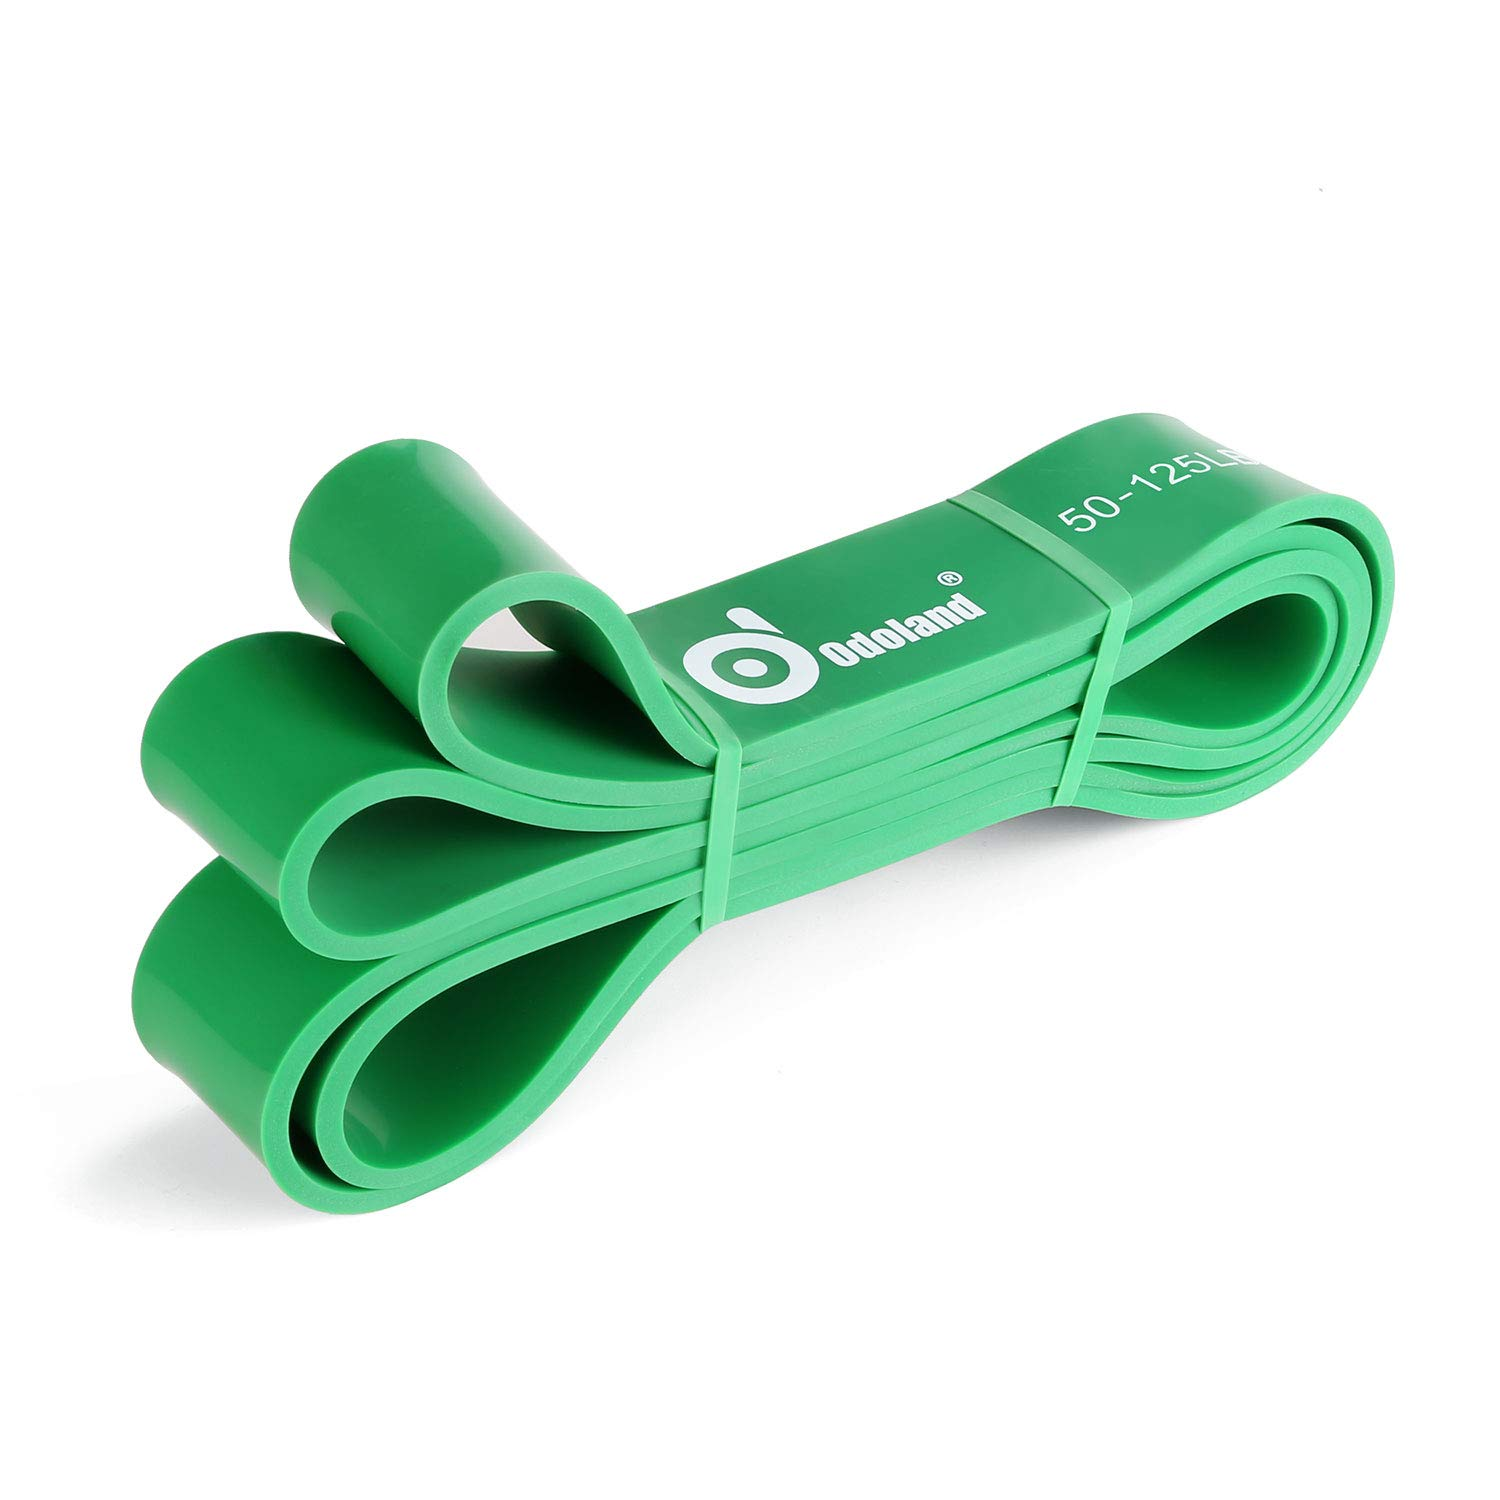 Odoland Resistance Bands, Pull Up Bands for Resistance Training, Physical Therapy, Home Workouts,Green